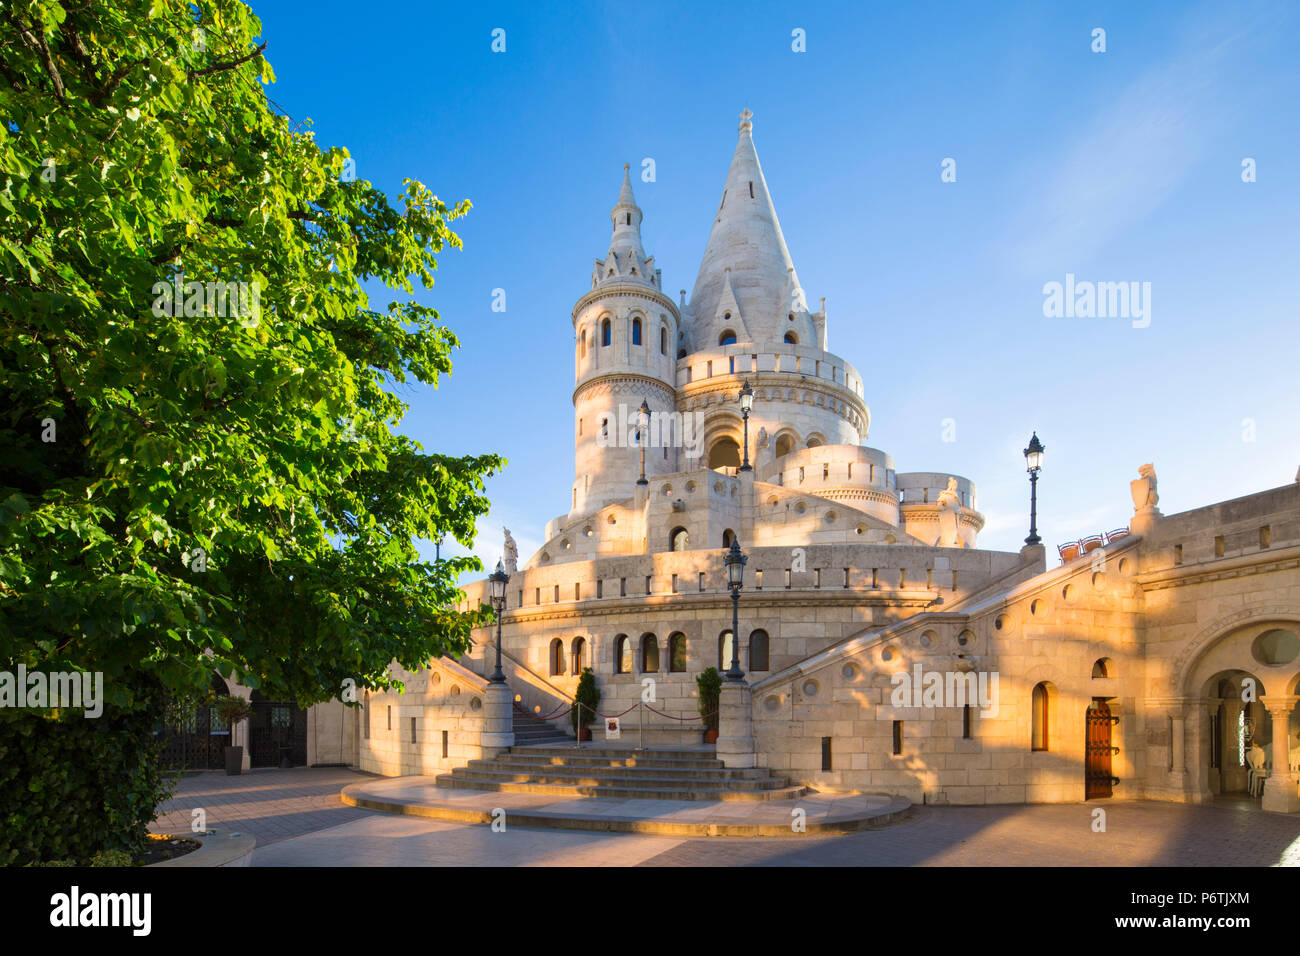 Hungary, Central Hungary, Budapest. Fisherman's Bastion takes it's name from the guild of fishermen responsible for defending this stretch of the city during the Middle Ages. - Stock Image